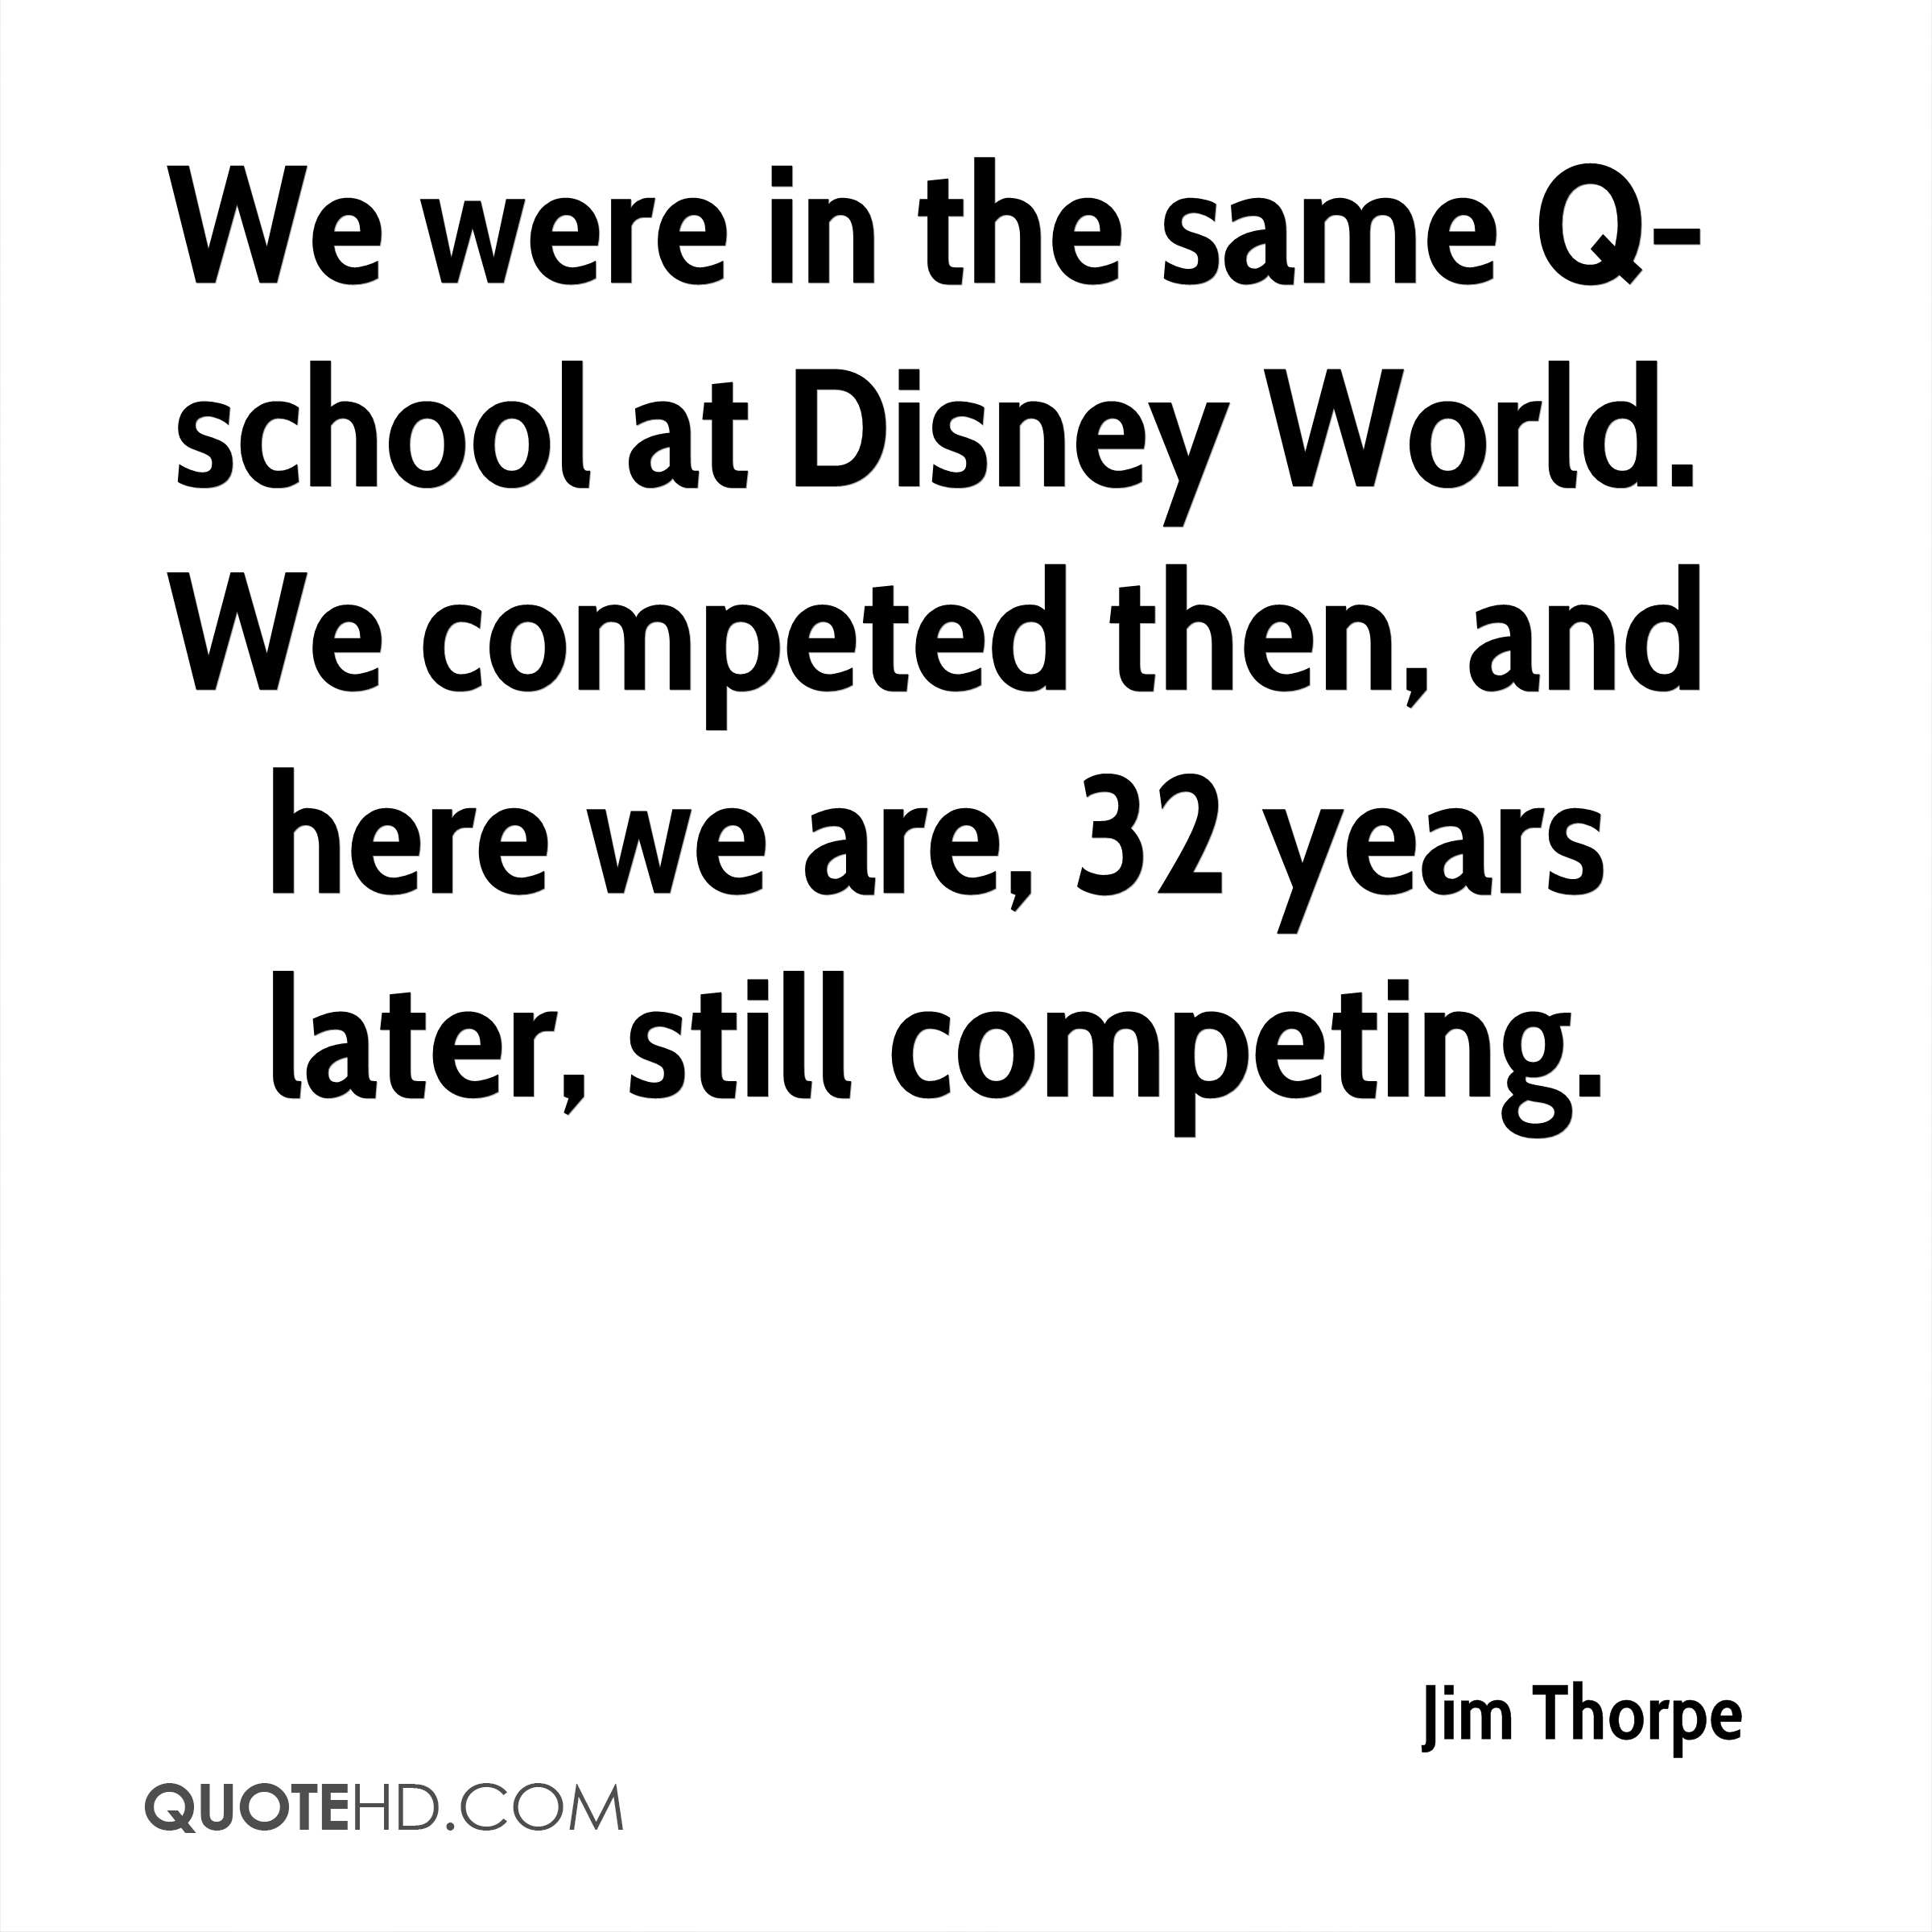 We were in the same Q-school at Disney World. We competed then, and here we are, 32 years later, still competing.